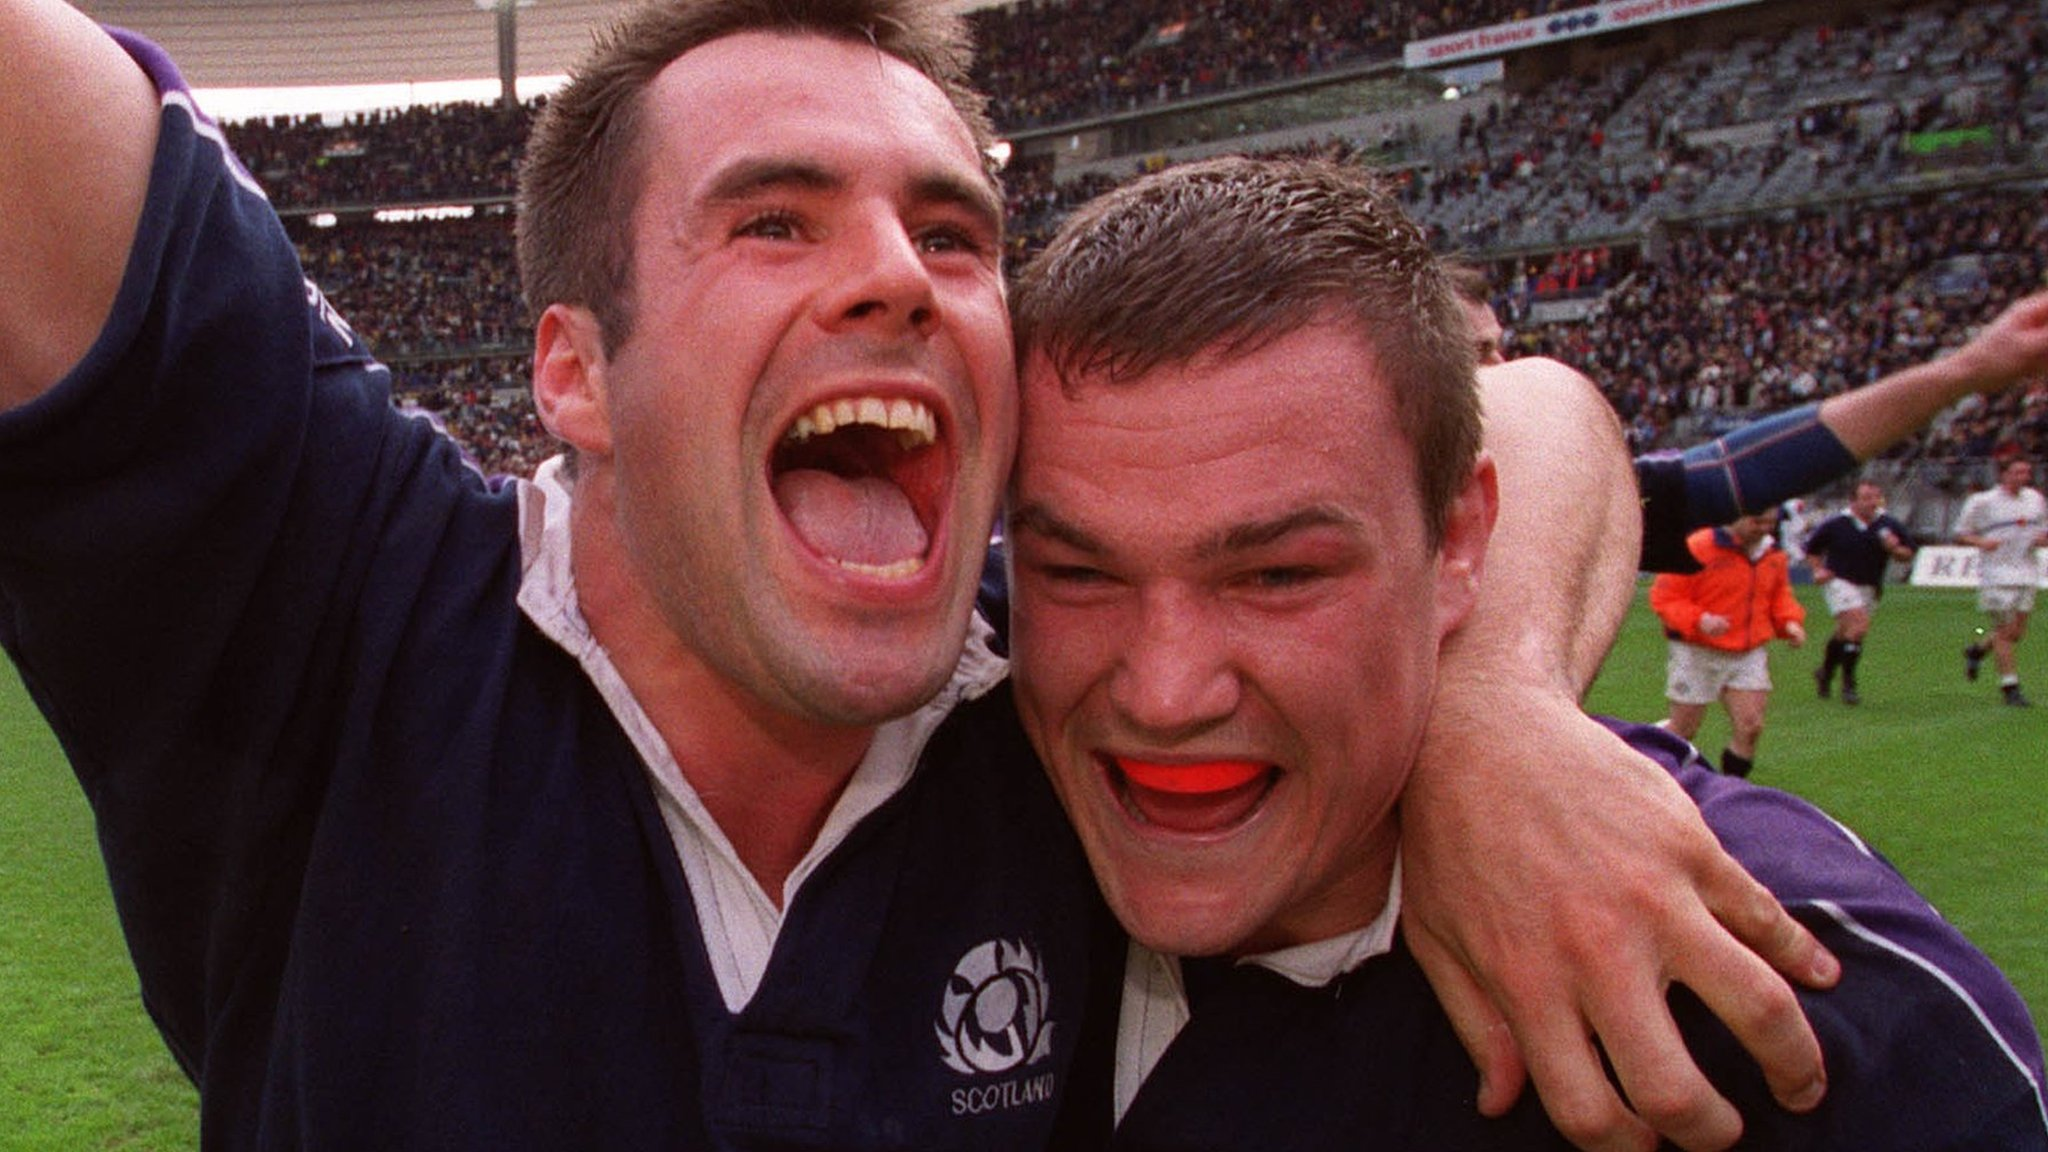 Prawn cocktail, 'space cadet' Townsend & champagne - Scotland's 1999 Paris glory relived